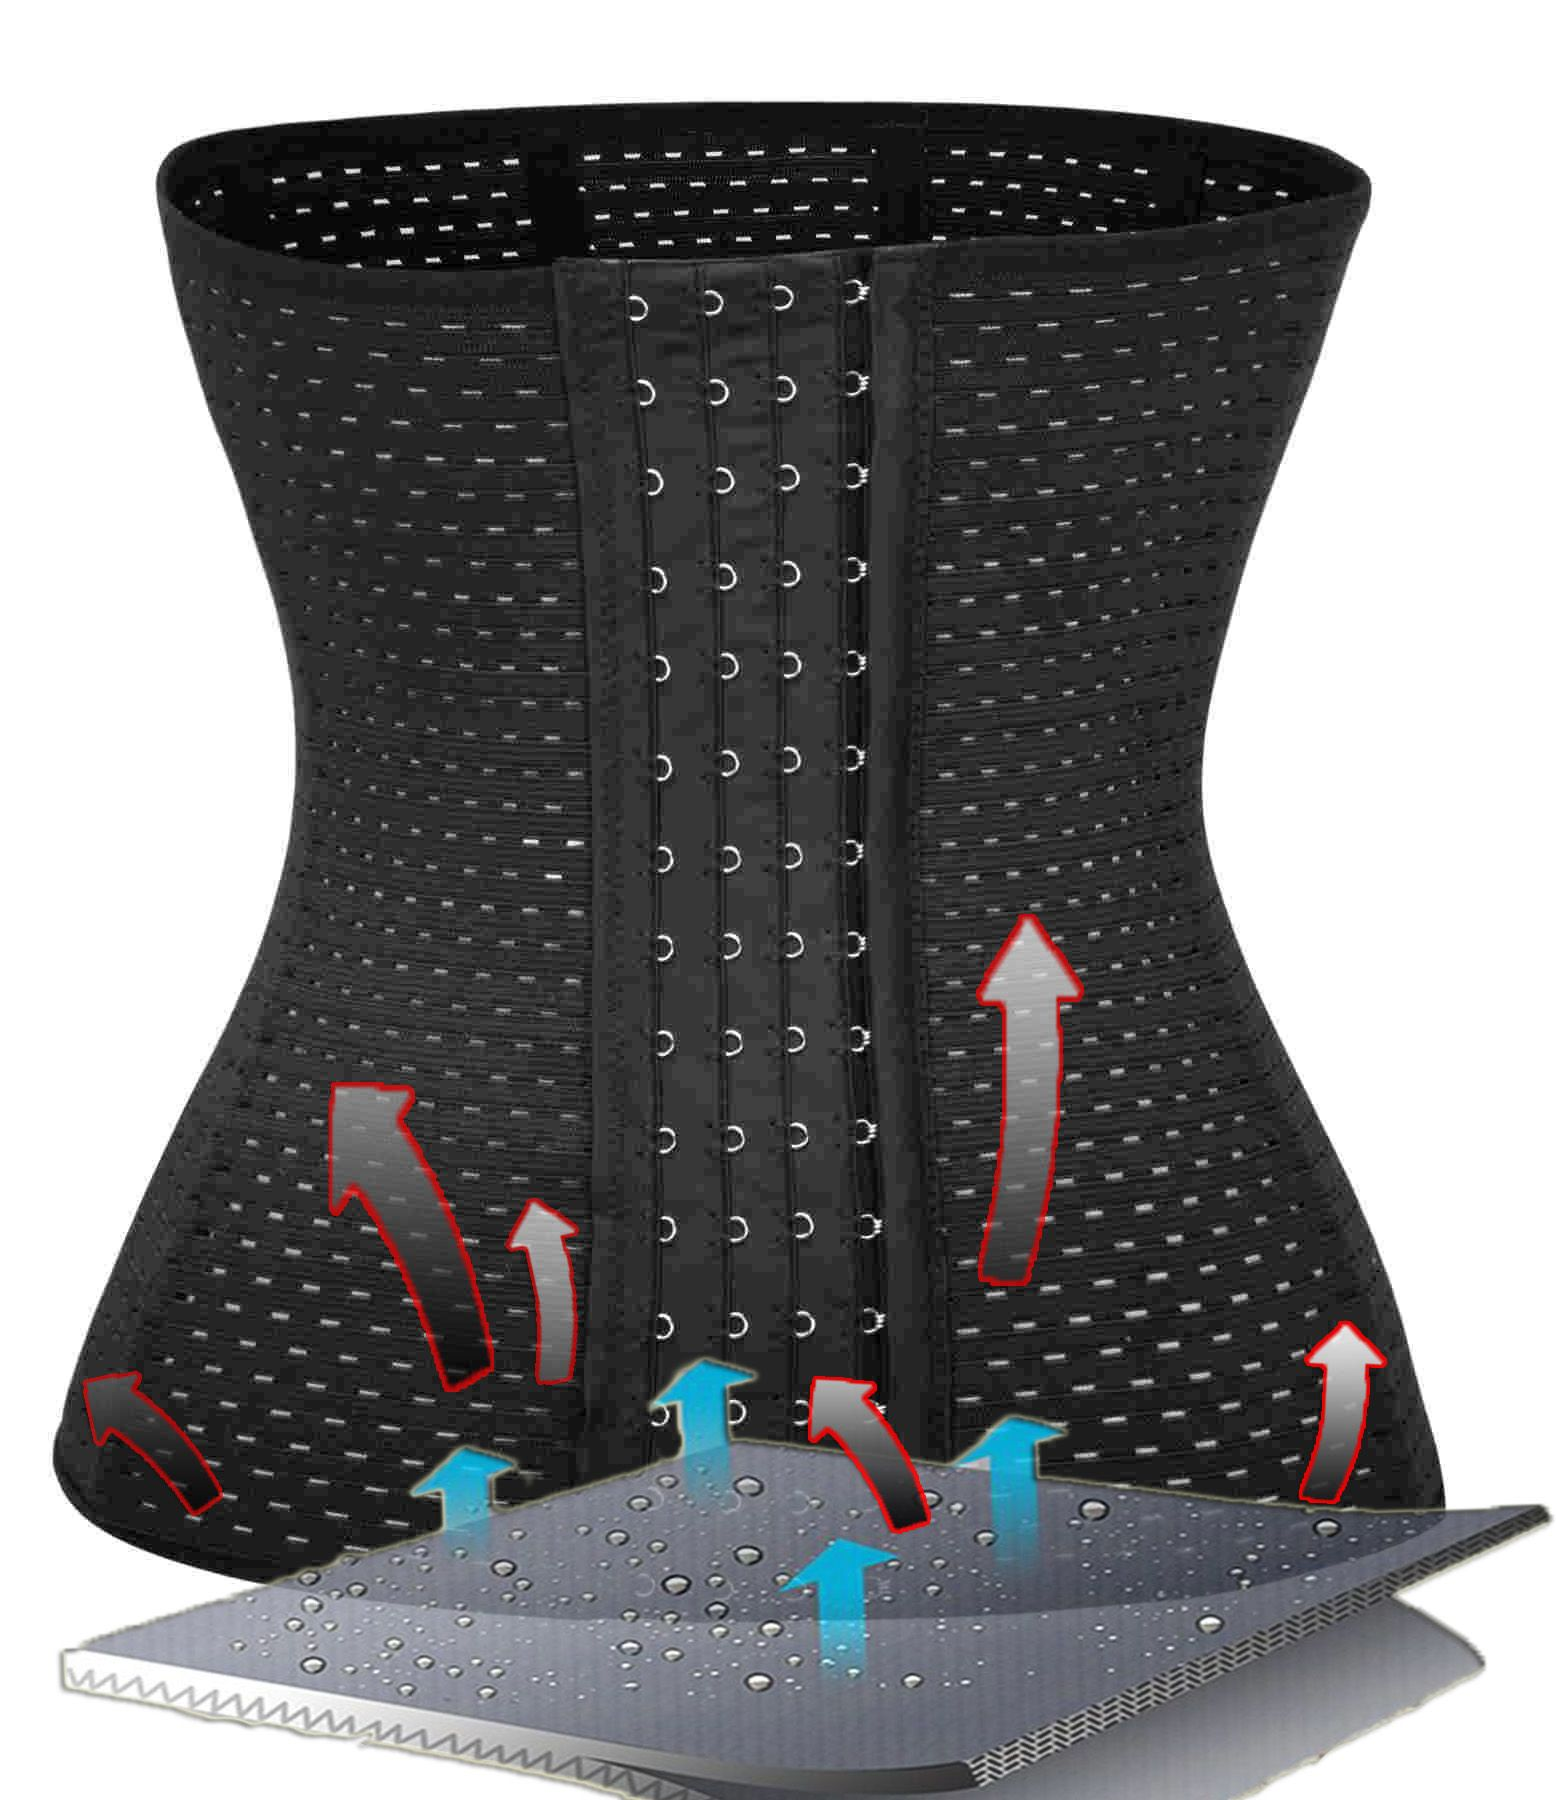 c3a01f8e670 Mesh Waist trainer Invisible Shaping Lower Abdomen Trimming Enhances  Hourglass Silhouette Eliminates love handles and muffin top Slims